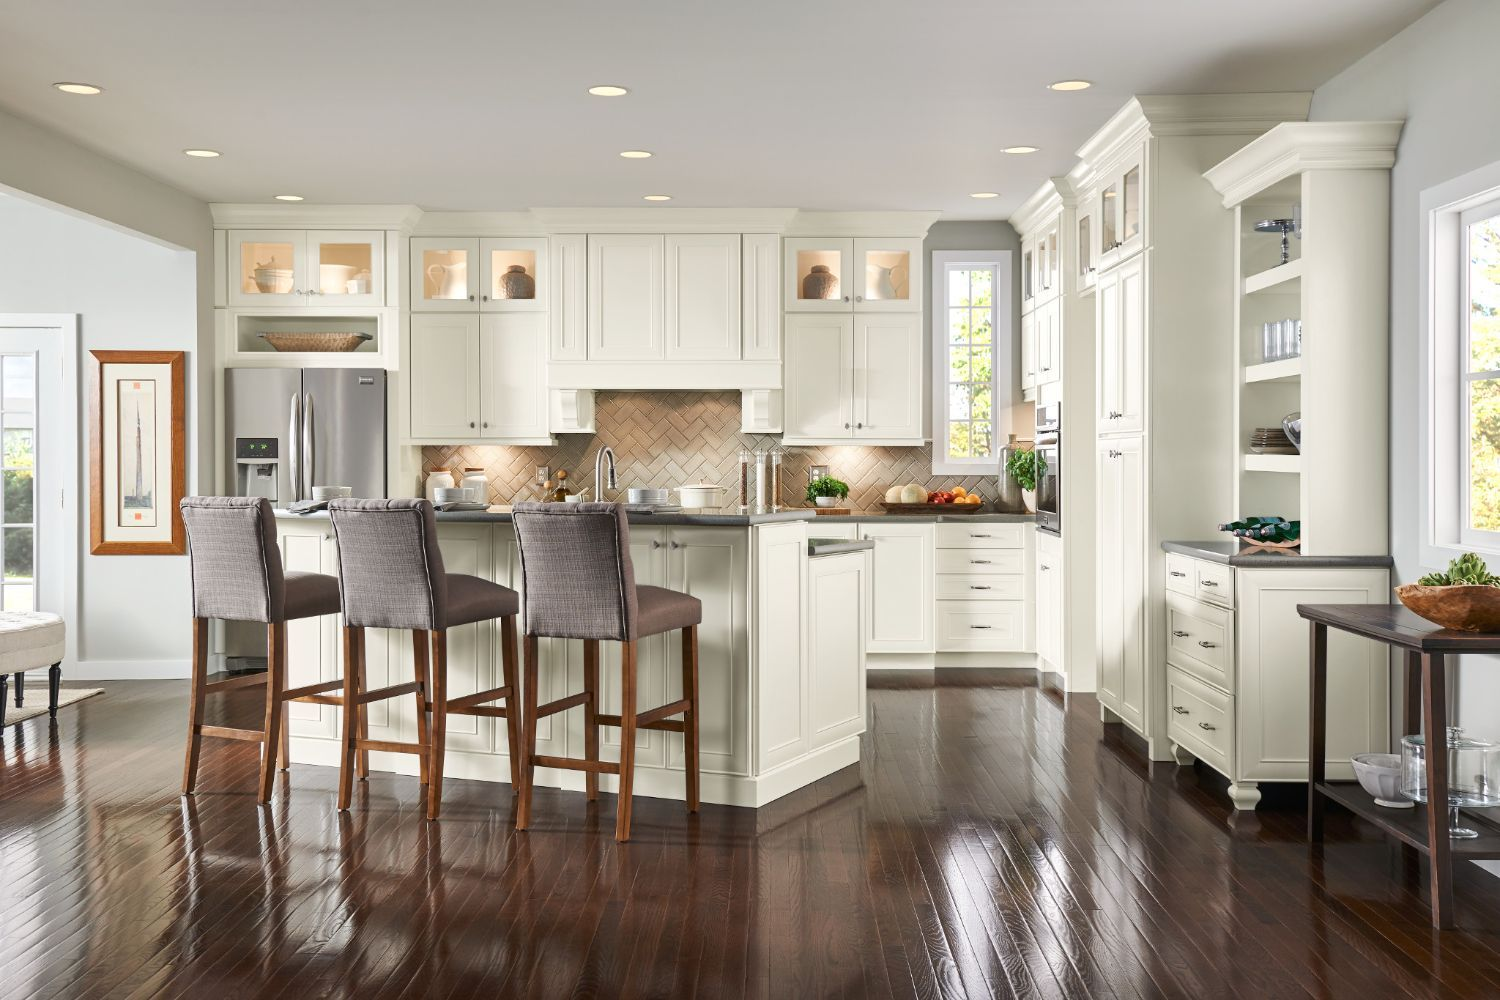 Best Atherton Collection American Woodmark Kitchen Remodel 400 x 300